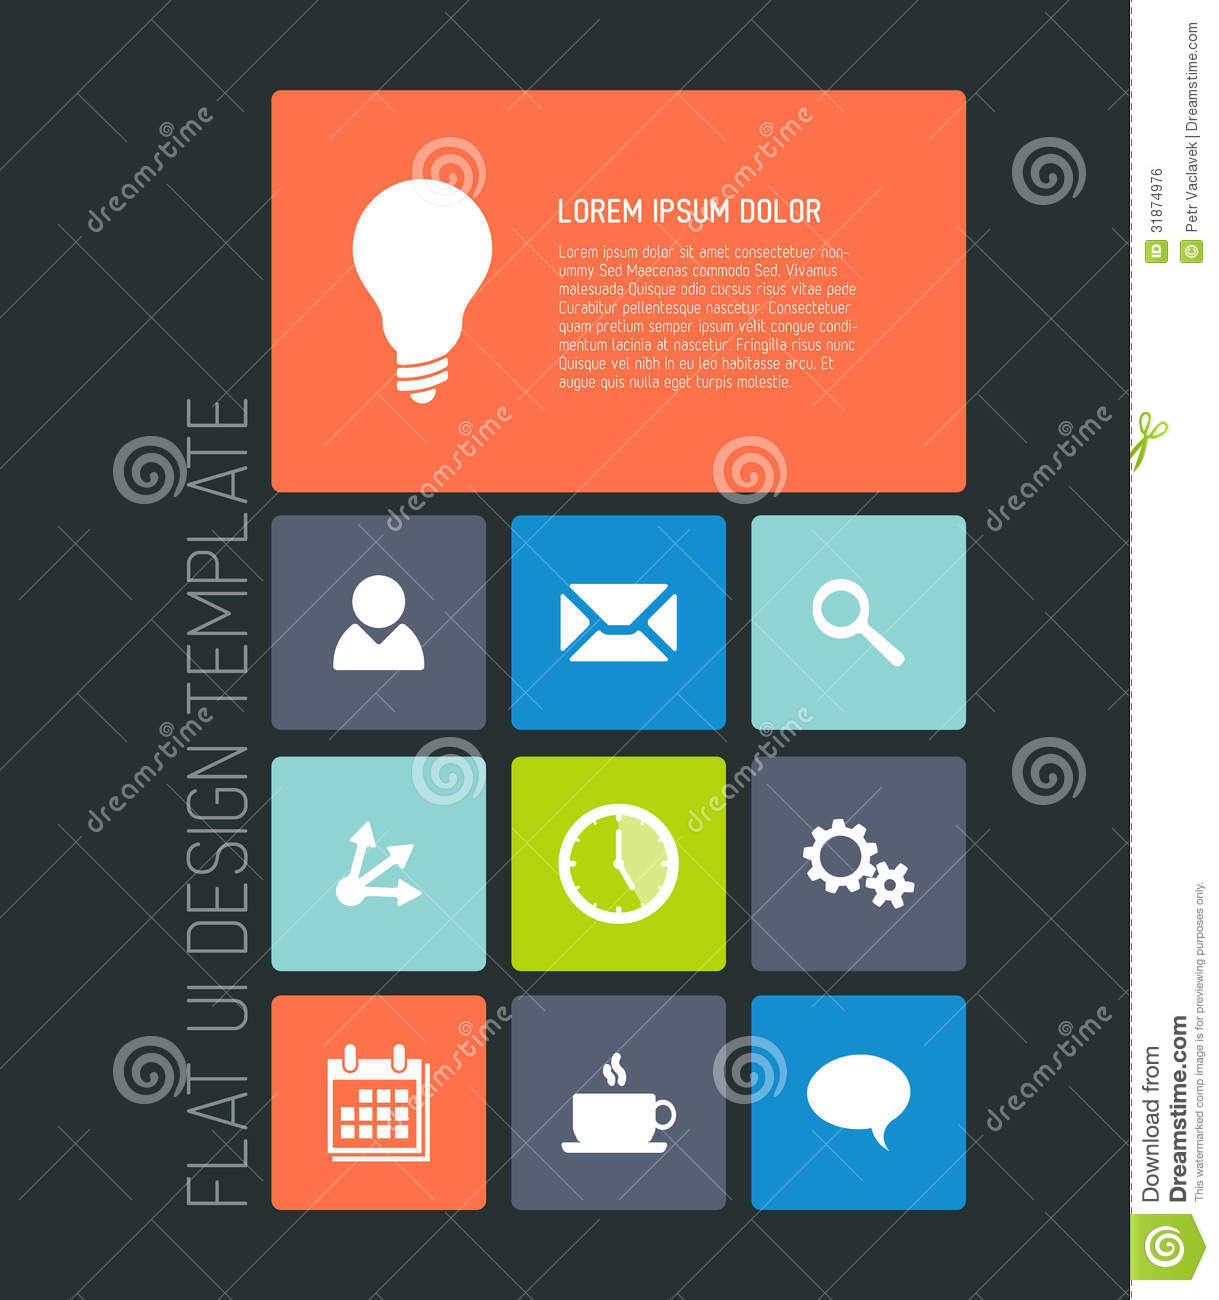 Modern Mobile Phone Flat User Interface Stock Vector